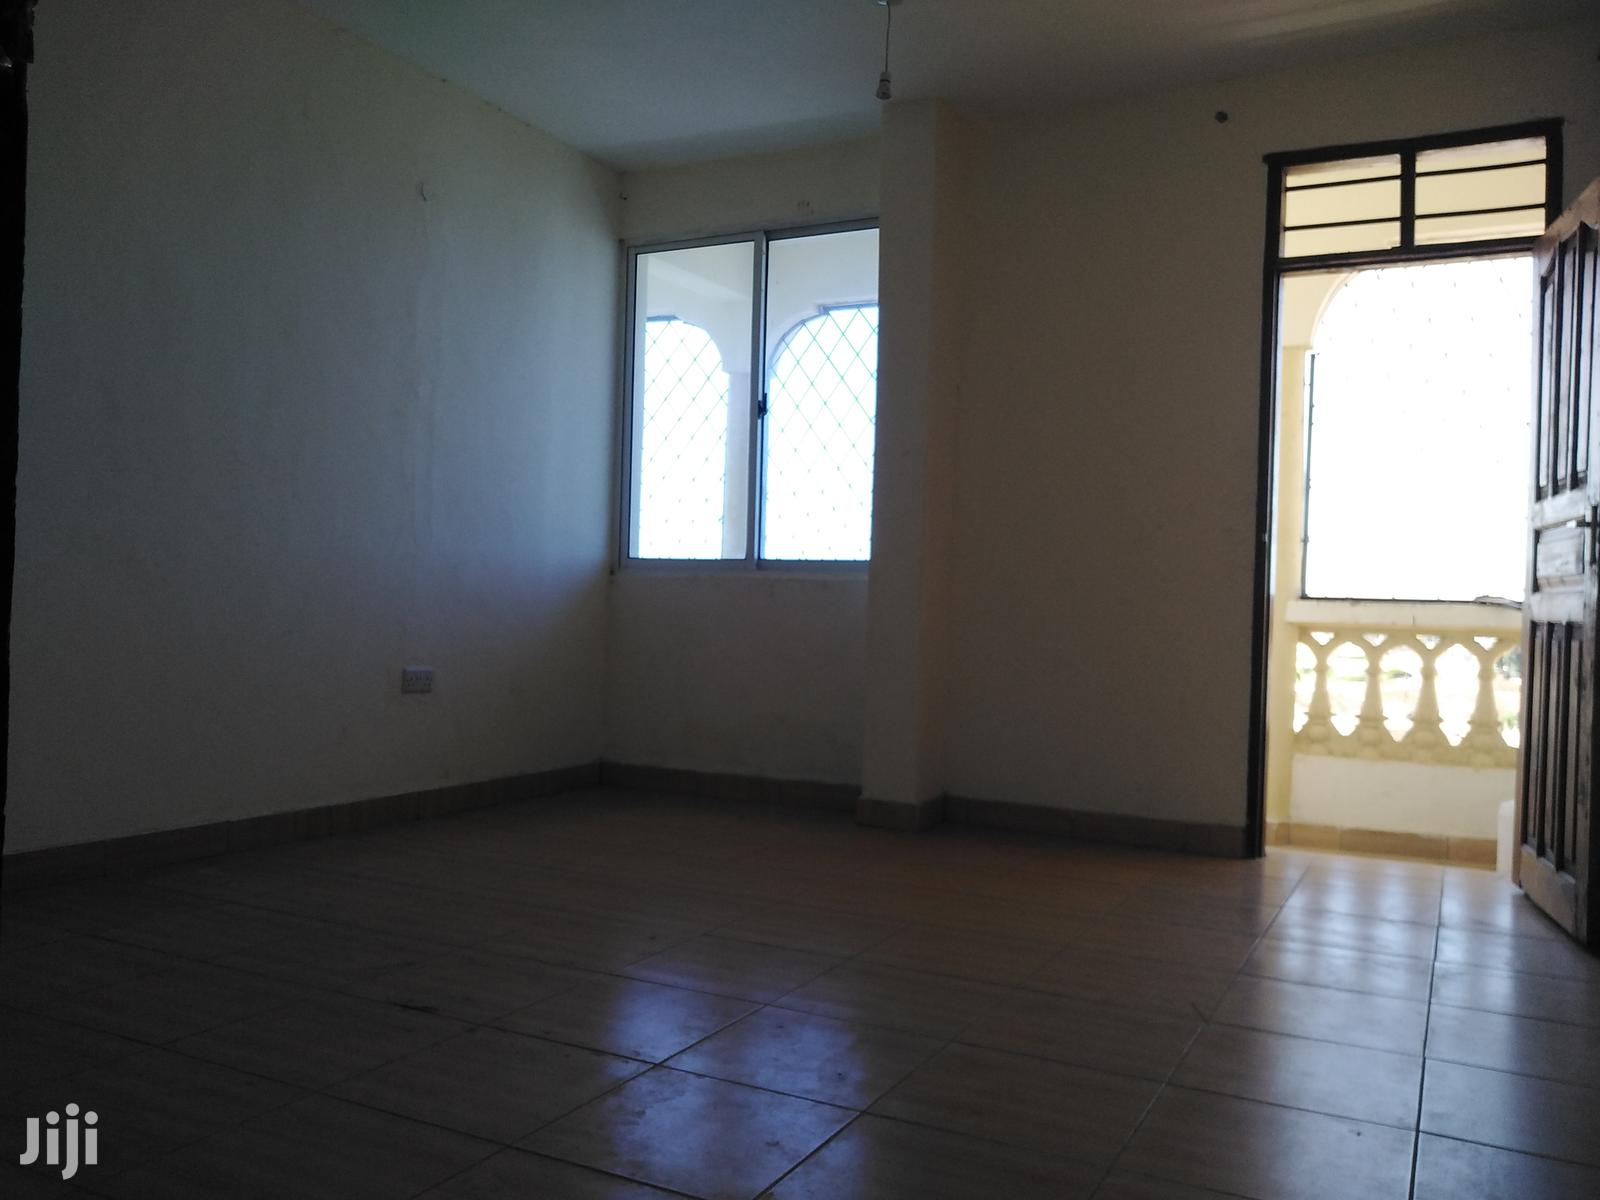 Three Bedroom To Let At Bilima (Ref Hse 426) | Houses & Apartments For Rent for sale in Kisauni, Mombasa, Kenya